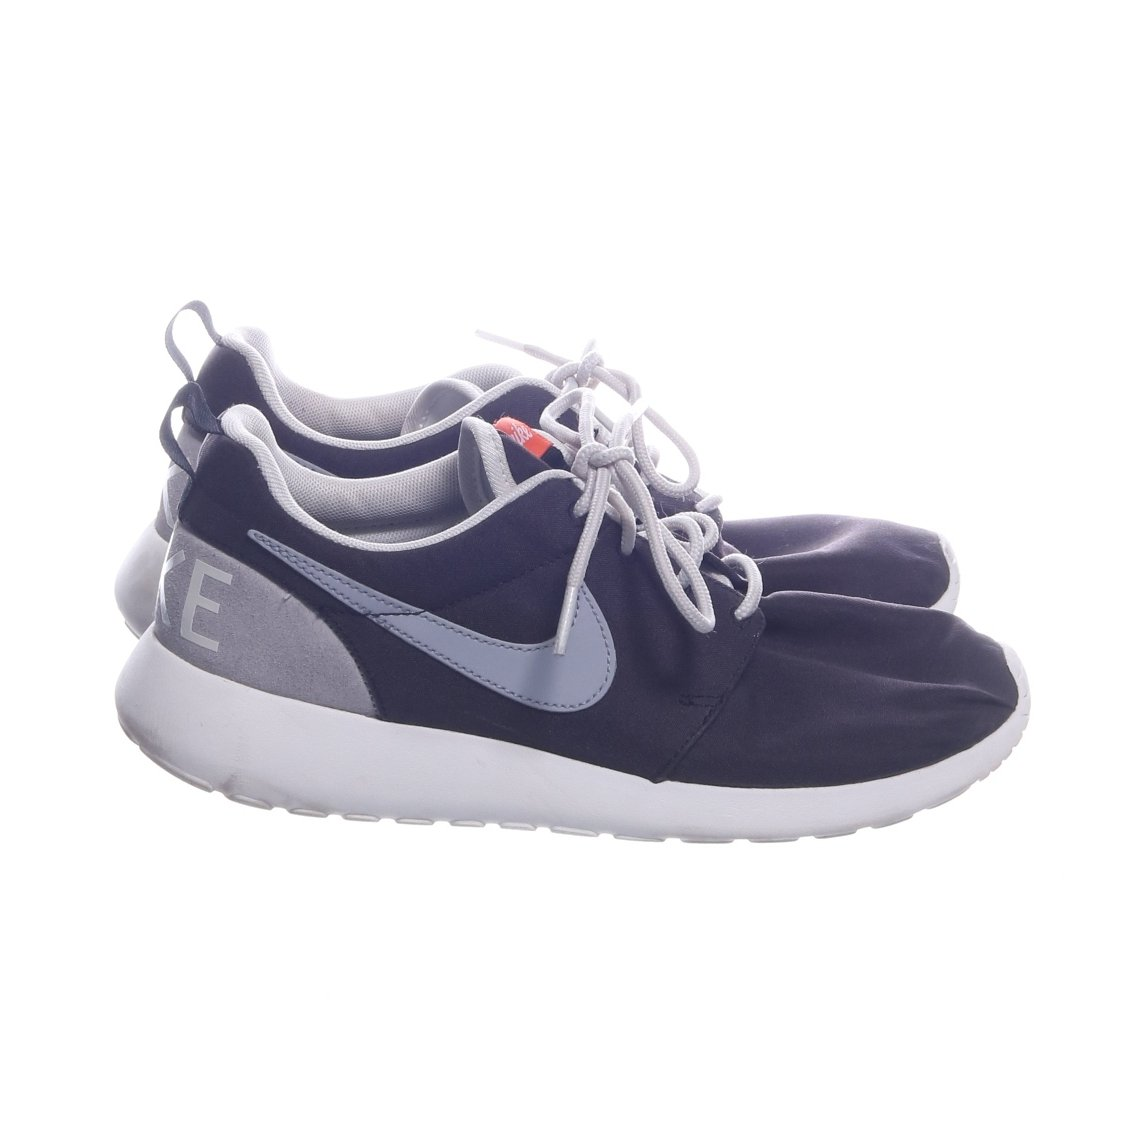 the latest b9ba5 b8ded Nike, Sneakers, Strl  39, Roshe One Retro, Energy Boost, Svart